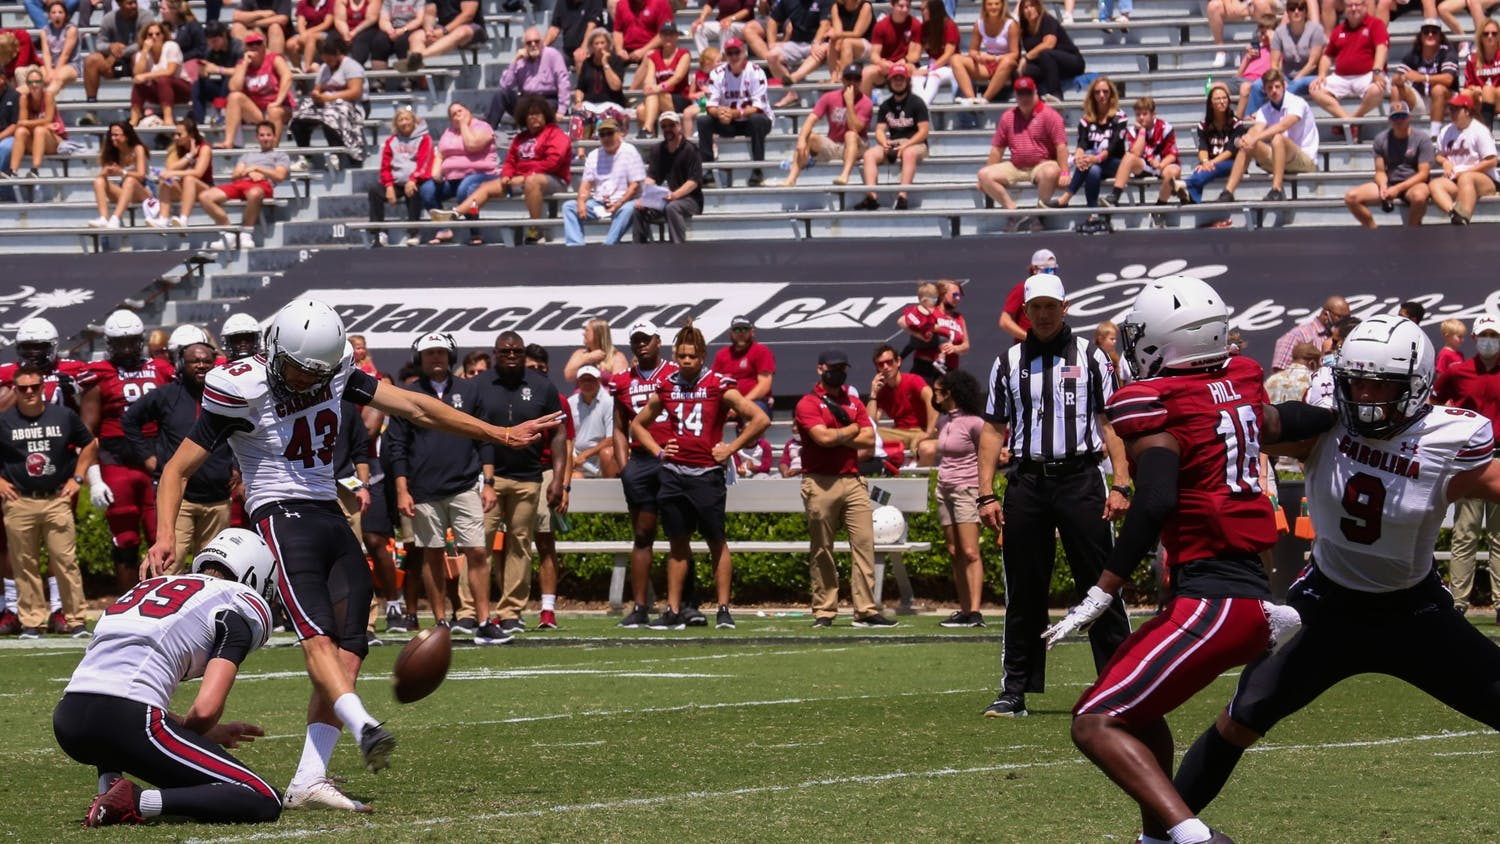 Redshirt senior kicker Parker White punts the ball down the field during the 2021 Spring Game.